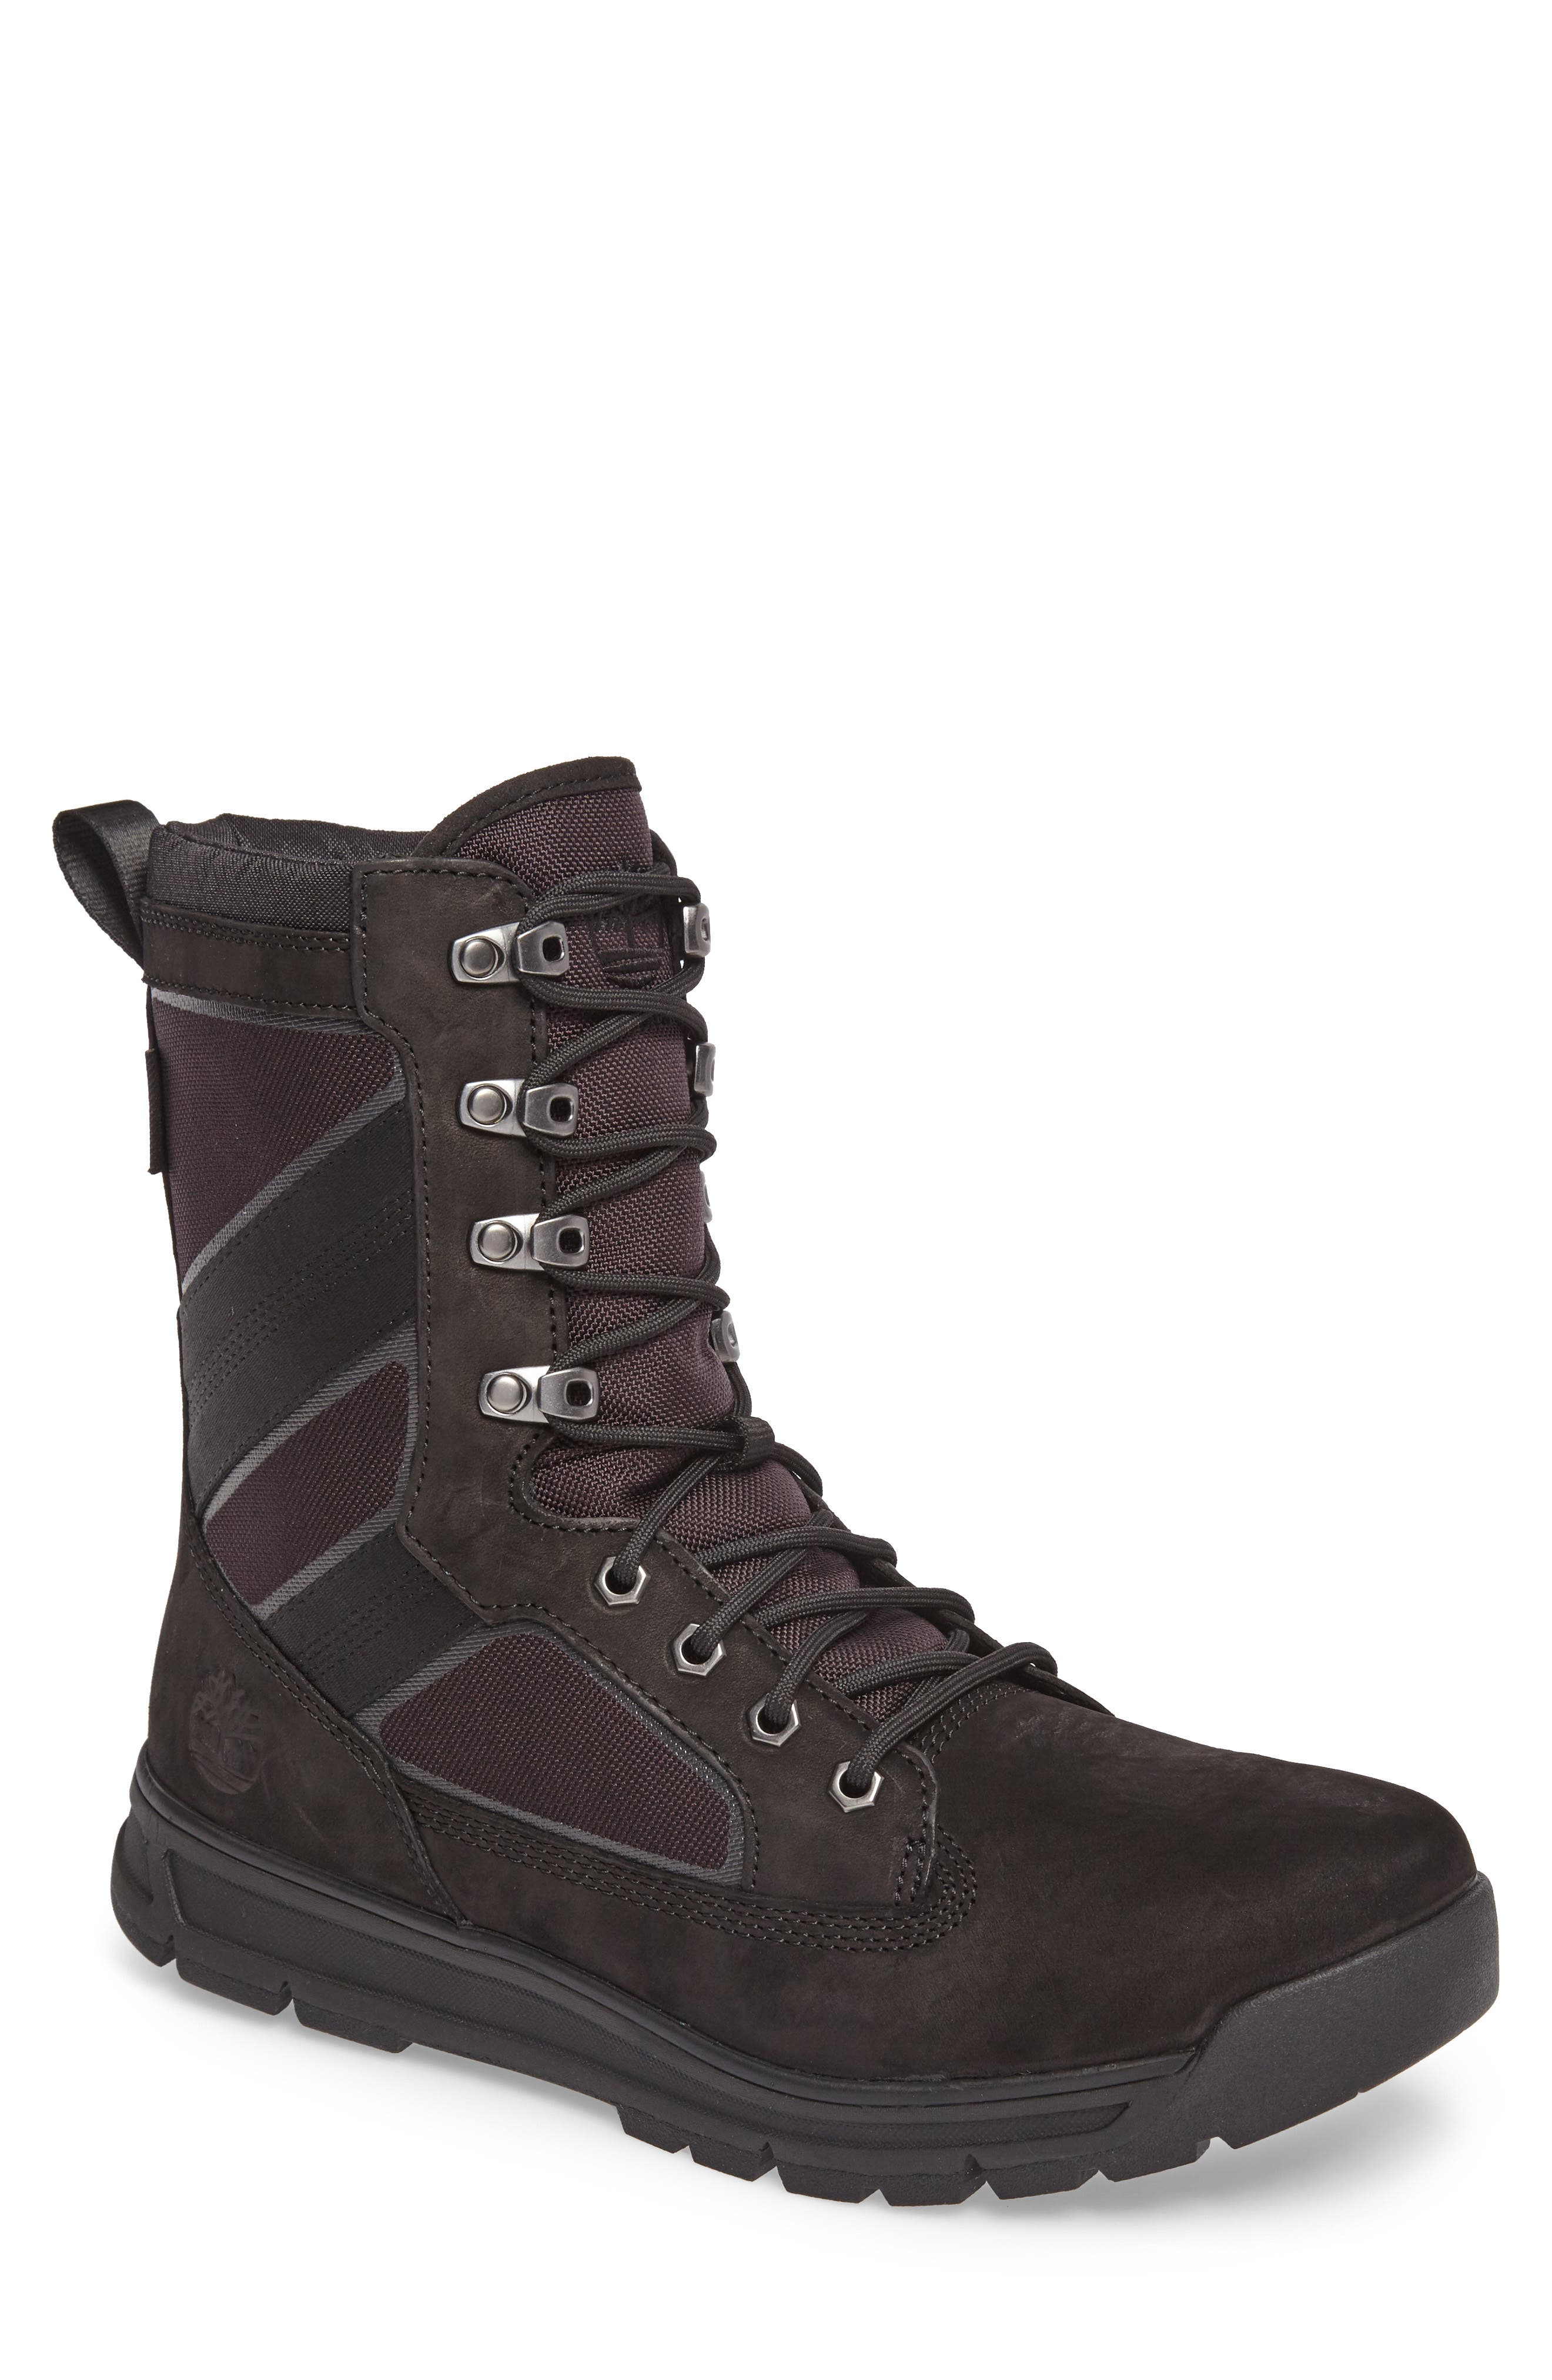 Field Guide Boot,                             Main thumbnail 1, color,                             Black Leather